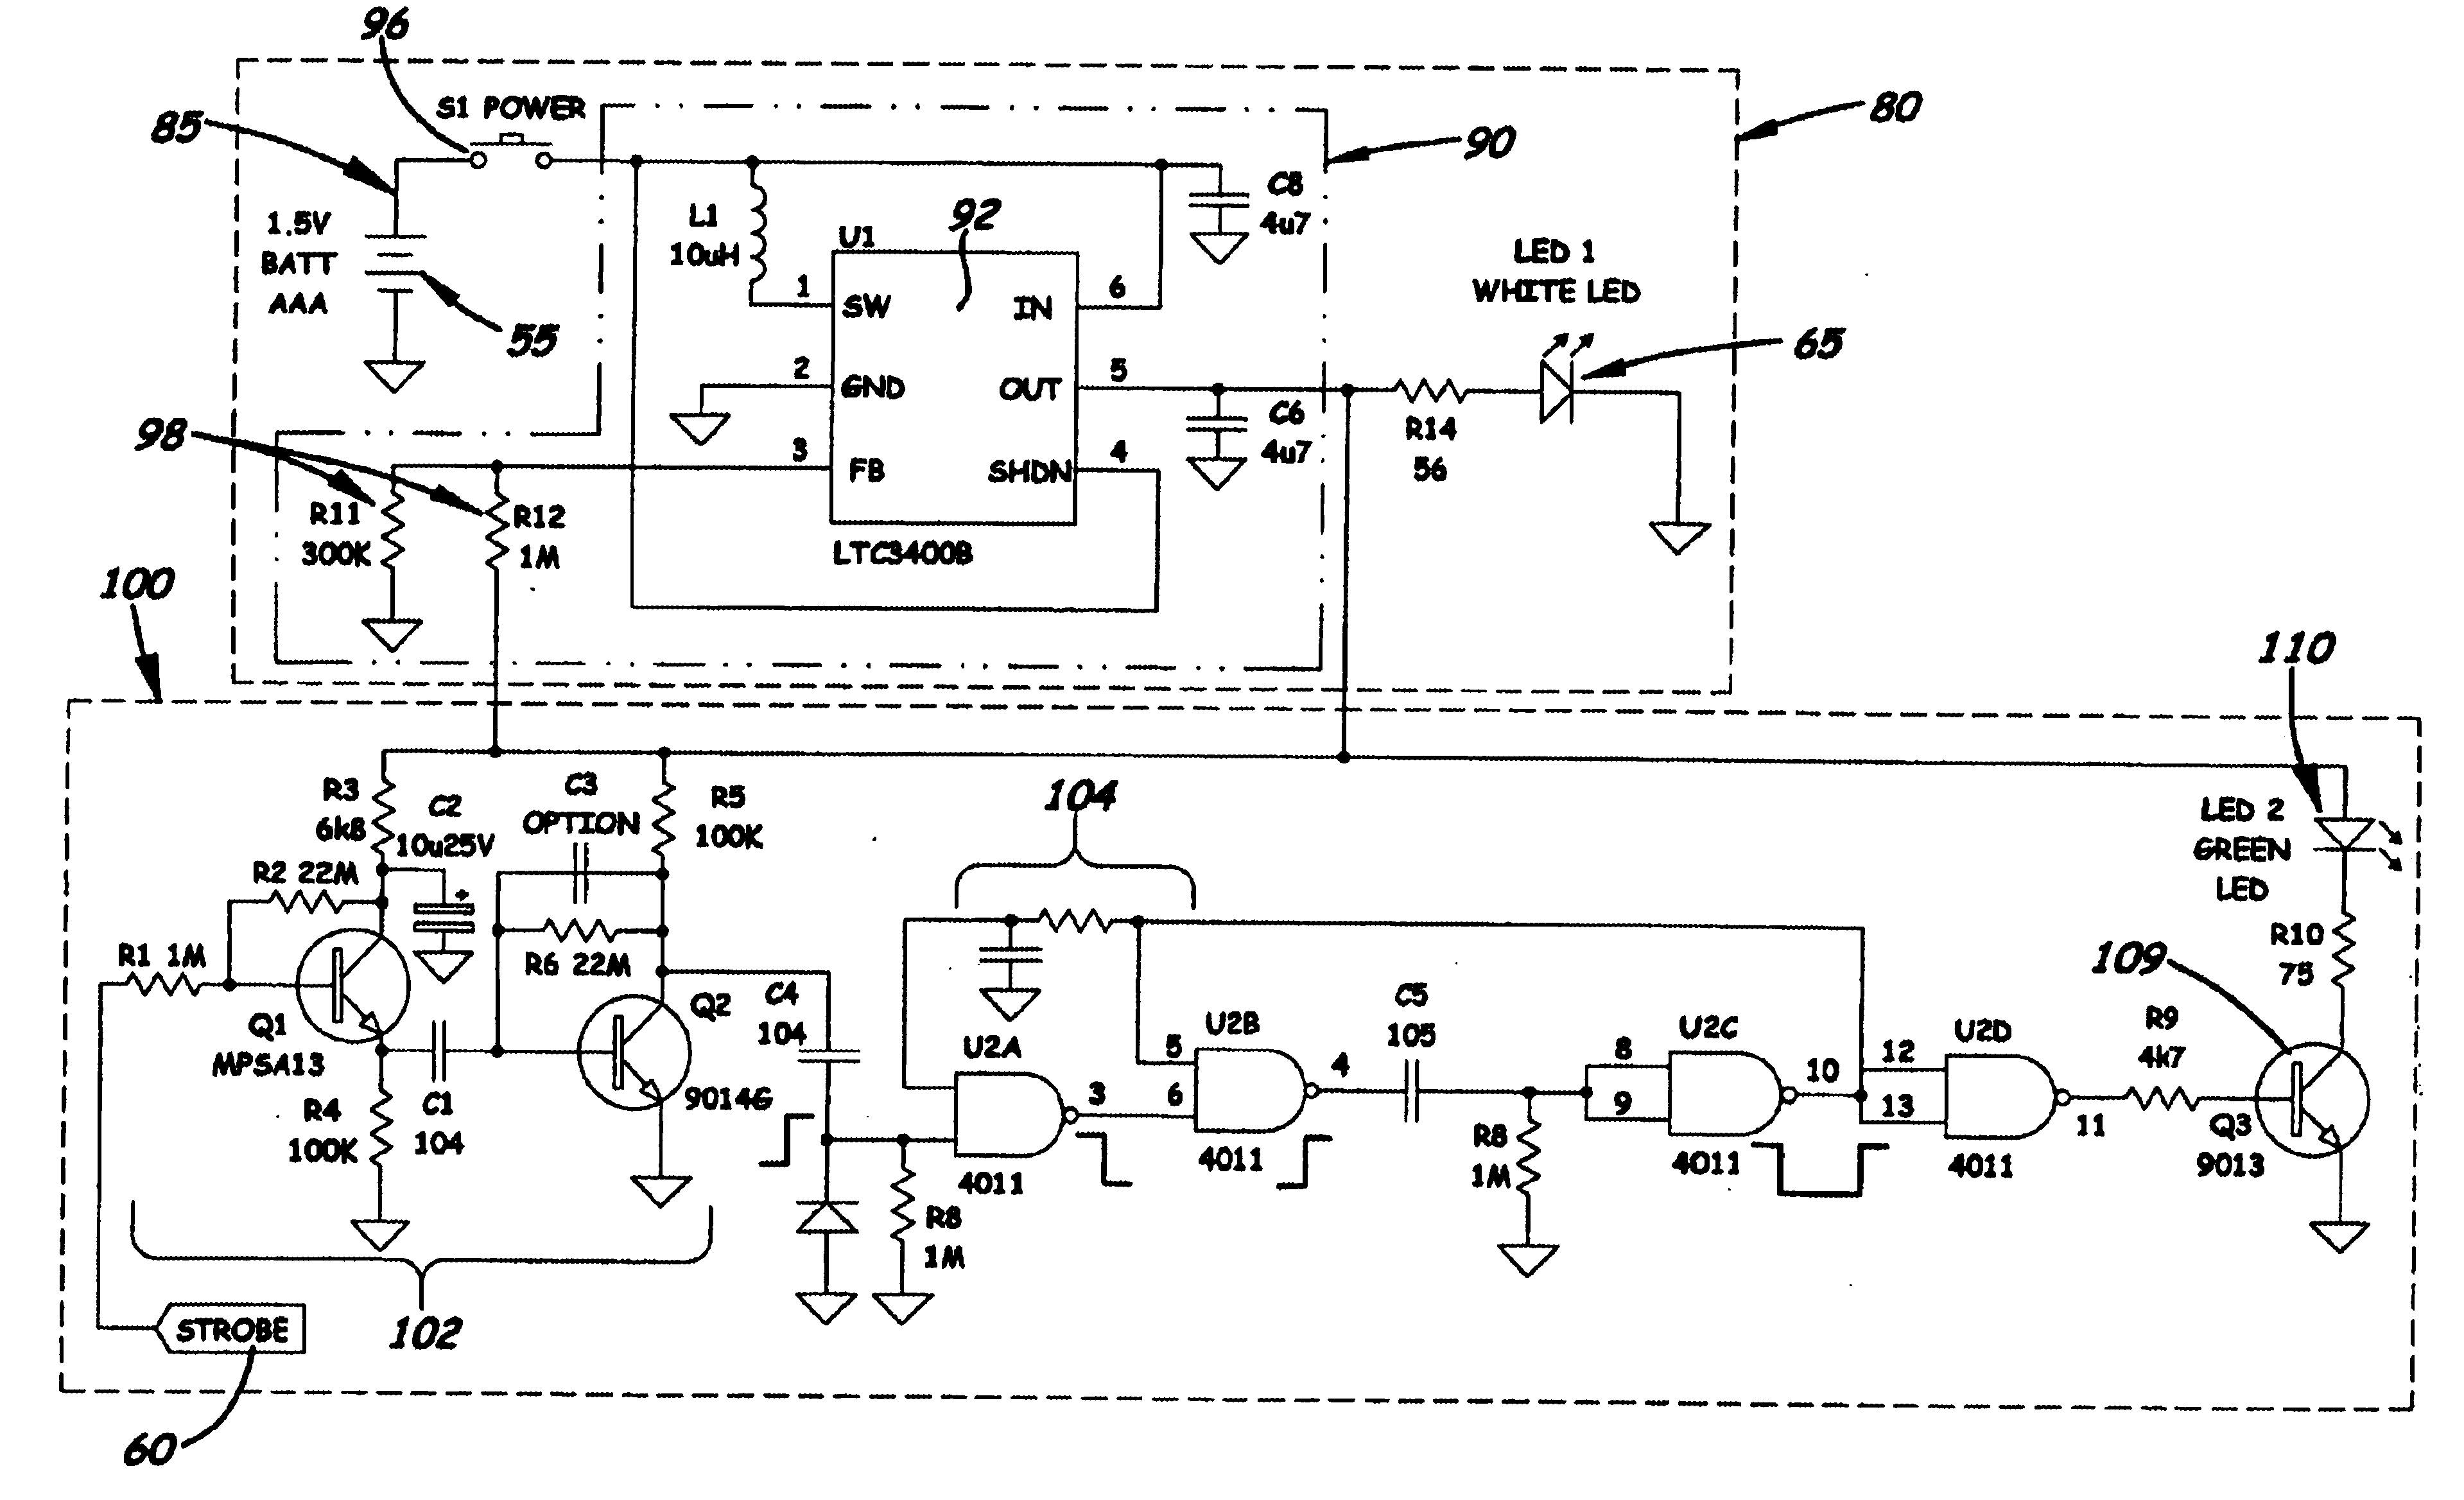 Led Flashlight Circuit Diagram Schematic Diagrams Use Supercapacitor Circuitschematic Patent Us6924605 Combination Voltage Detector And Wiring Calculator